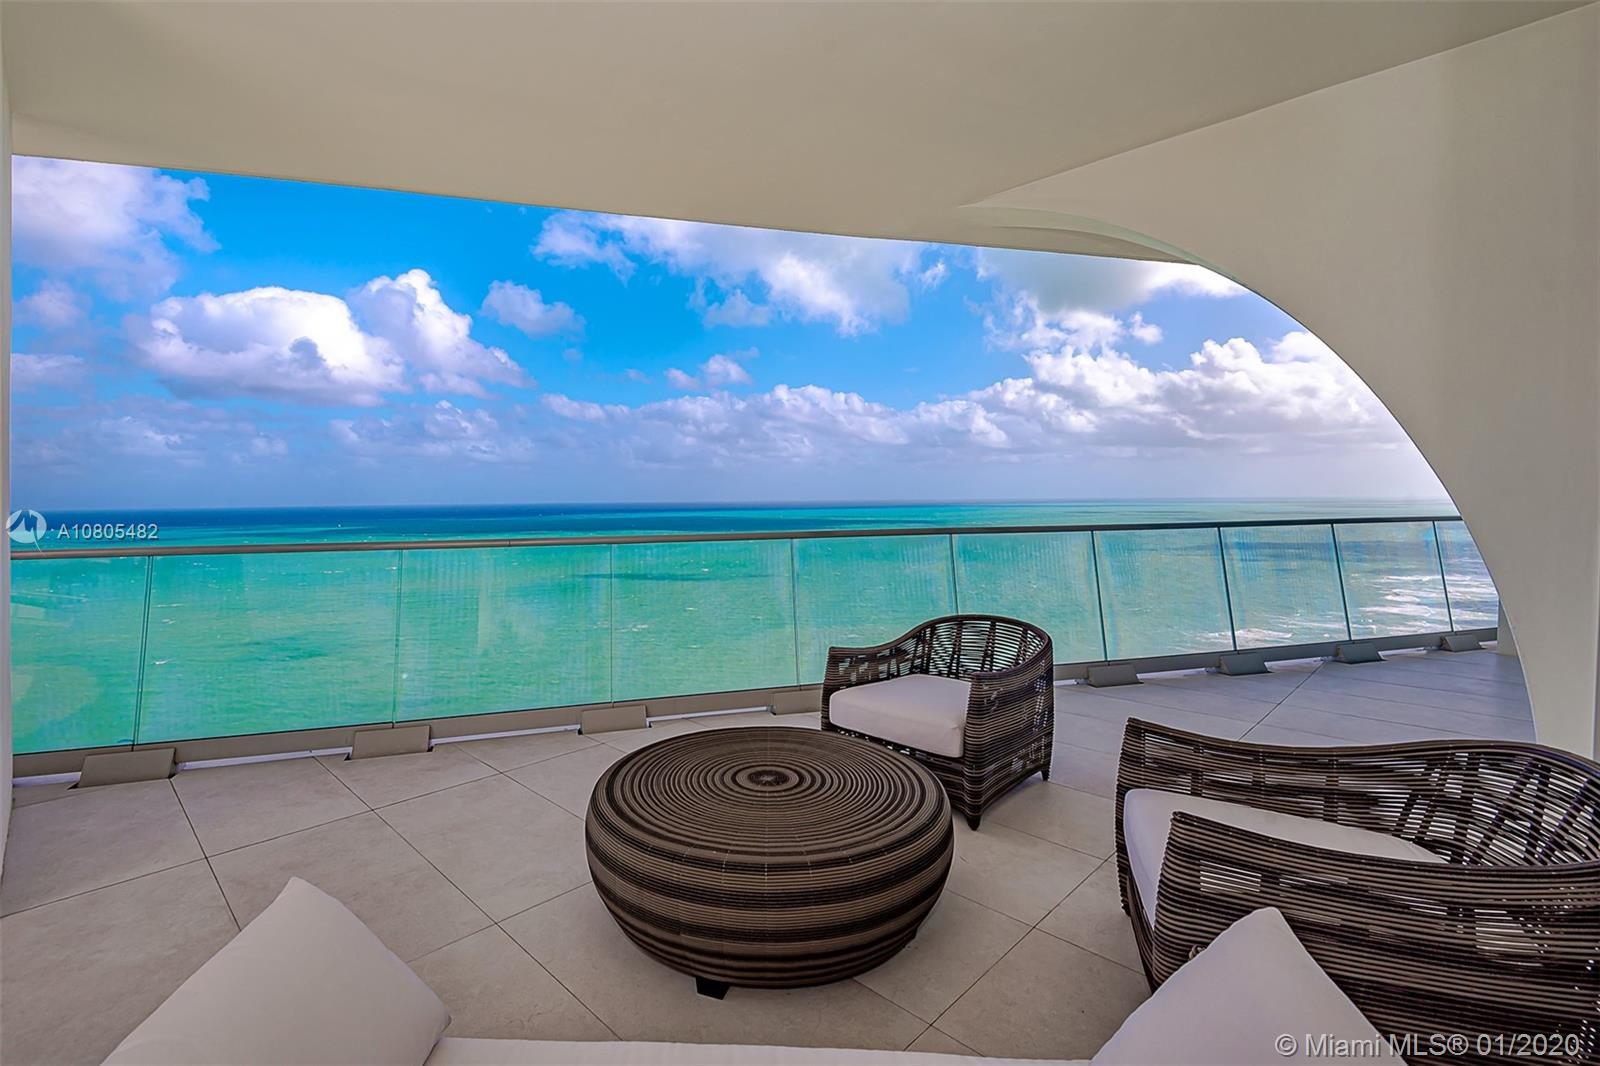 BREATHTAKING VIEW FROM THIS UNIQUE NORTH CORNER UNIT – DIRECT OCEAN AND INTRACOASTAL VIEWS – TURN KEY HOME PROFESSIONAL DECORATED – CUSTOM MADE CLOSETS - OVER 3400SF INTERIOR PLUS TERRACES 4 BEDROOMS – MAID'S QUARTER – UPSCALE FURNITURE – GAGGANEAU AND SUBZERO APPLIANCES -  PRIVATE ELEVATOR – GYM – SPA – WINE BAR – YOGA CLASSES – TEEN LOUNGE – CONCIERGE SERVICE BUILDING DESIGNED BY FAMOUS ARCHITECT HERZOG & DE MEURON.